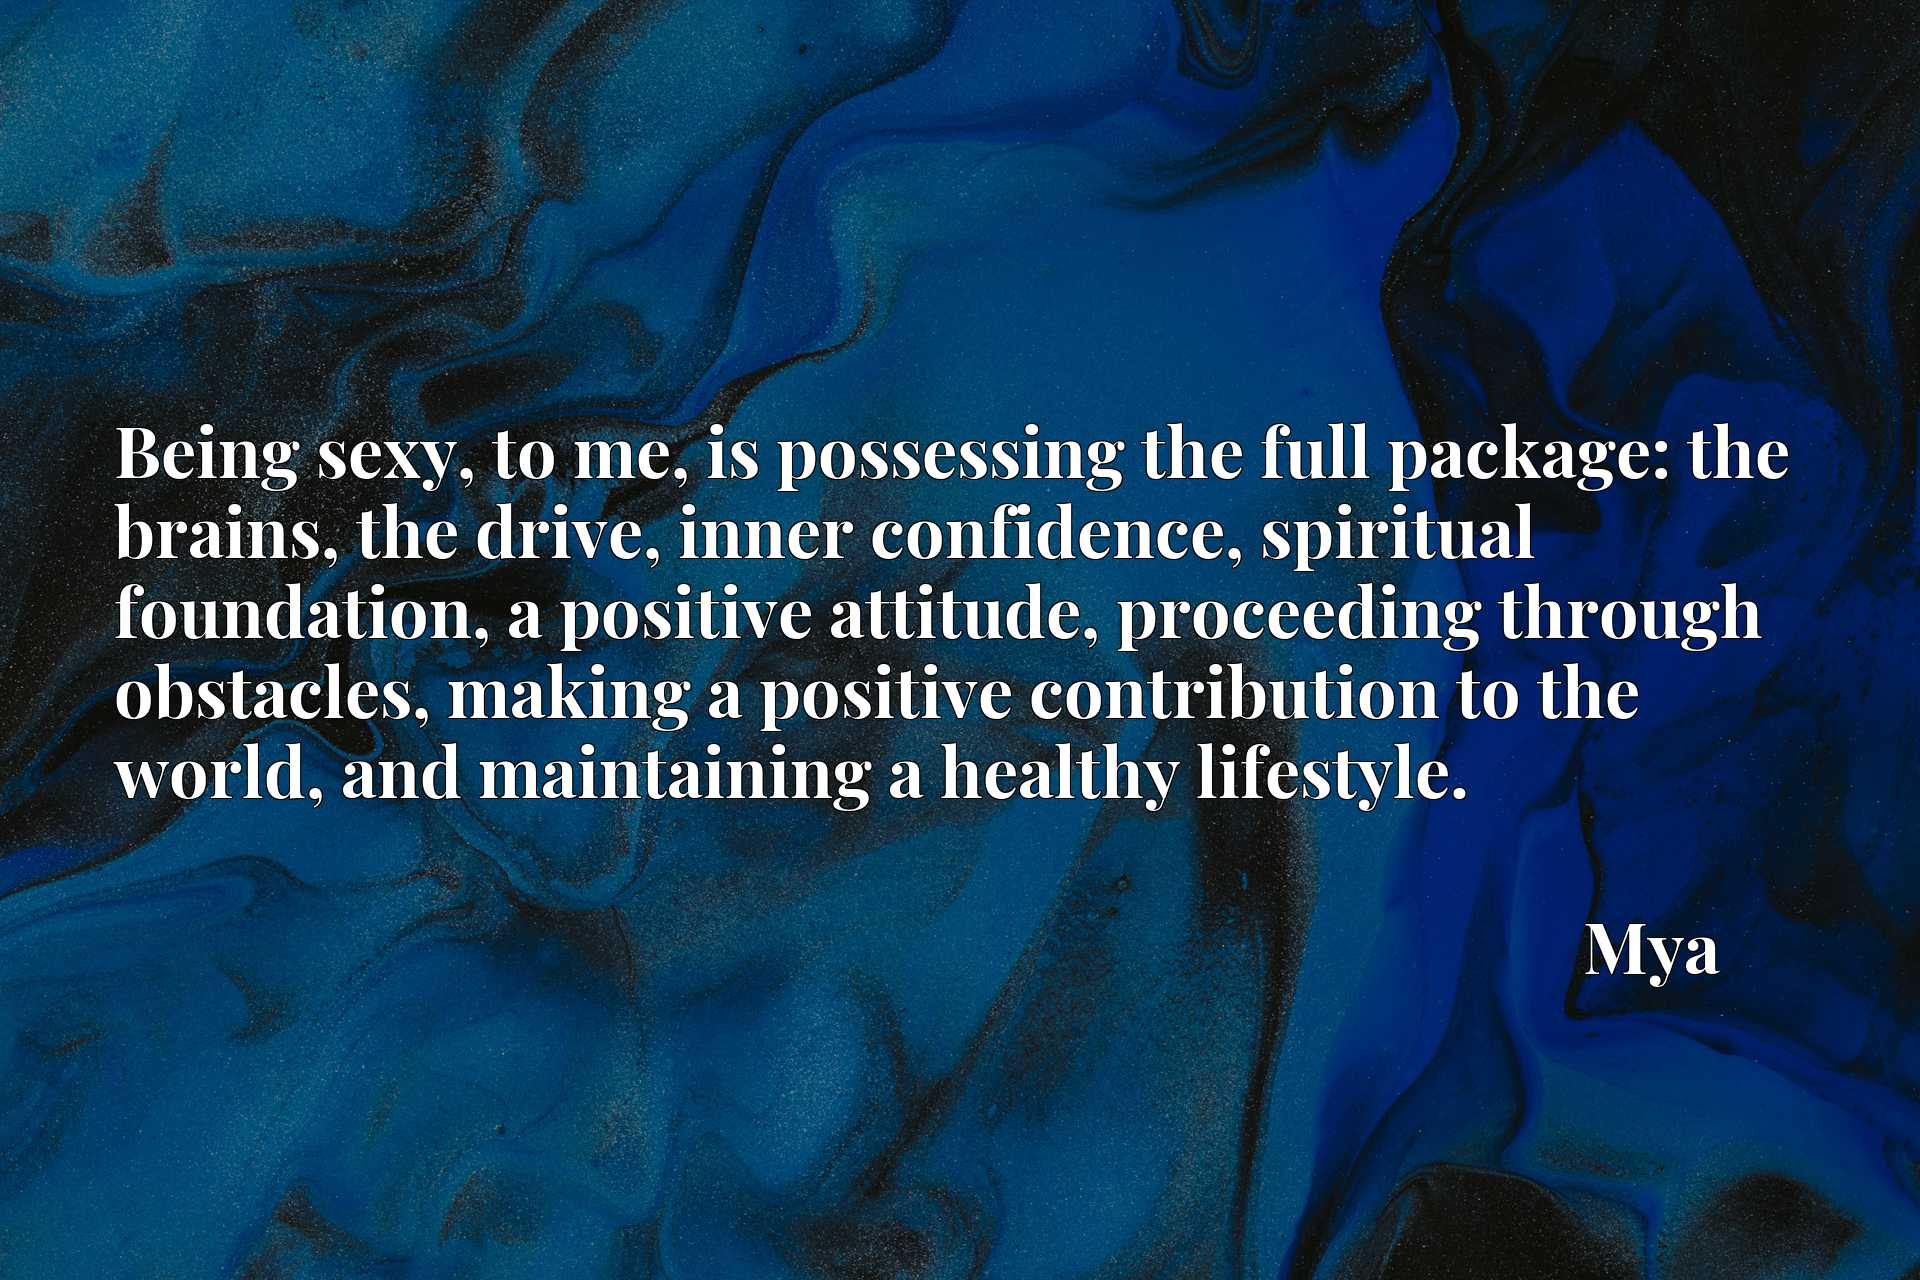 Being sexy, to me, is possessing the full package: the brains, the drive, inner confidence, spiritual foundation, a positive attitude, proceeding through obstacles, making a positive contribution to the world, and maintaining a healthy lifestyle.